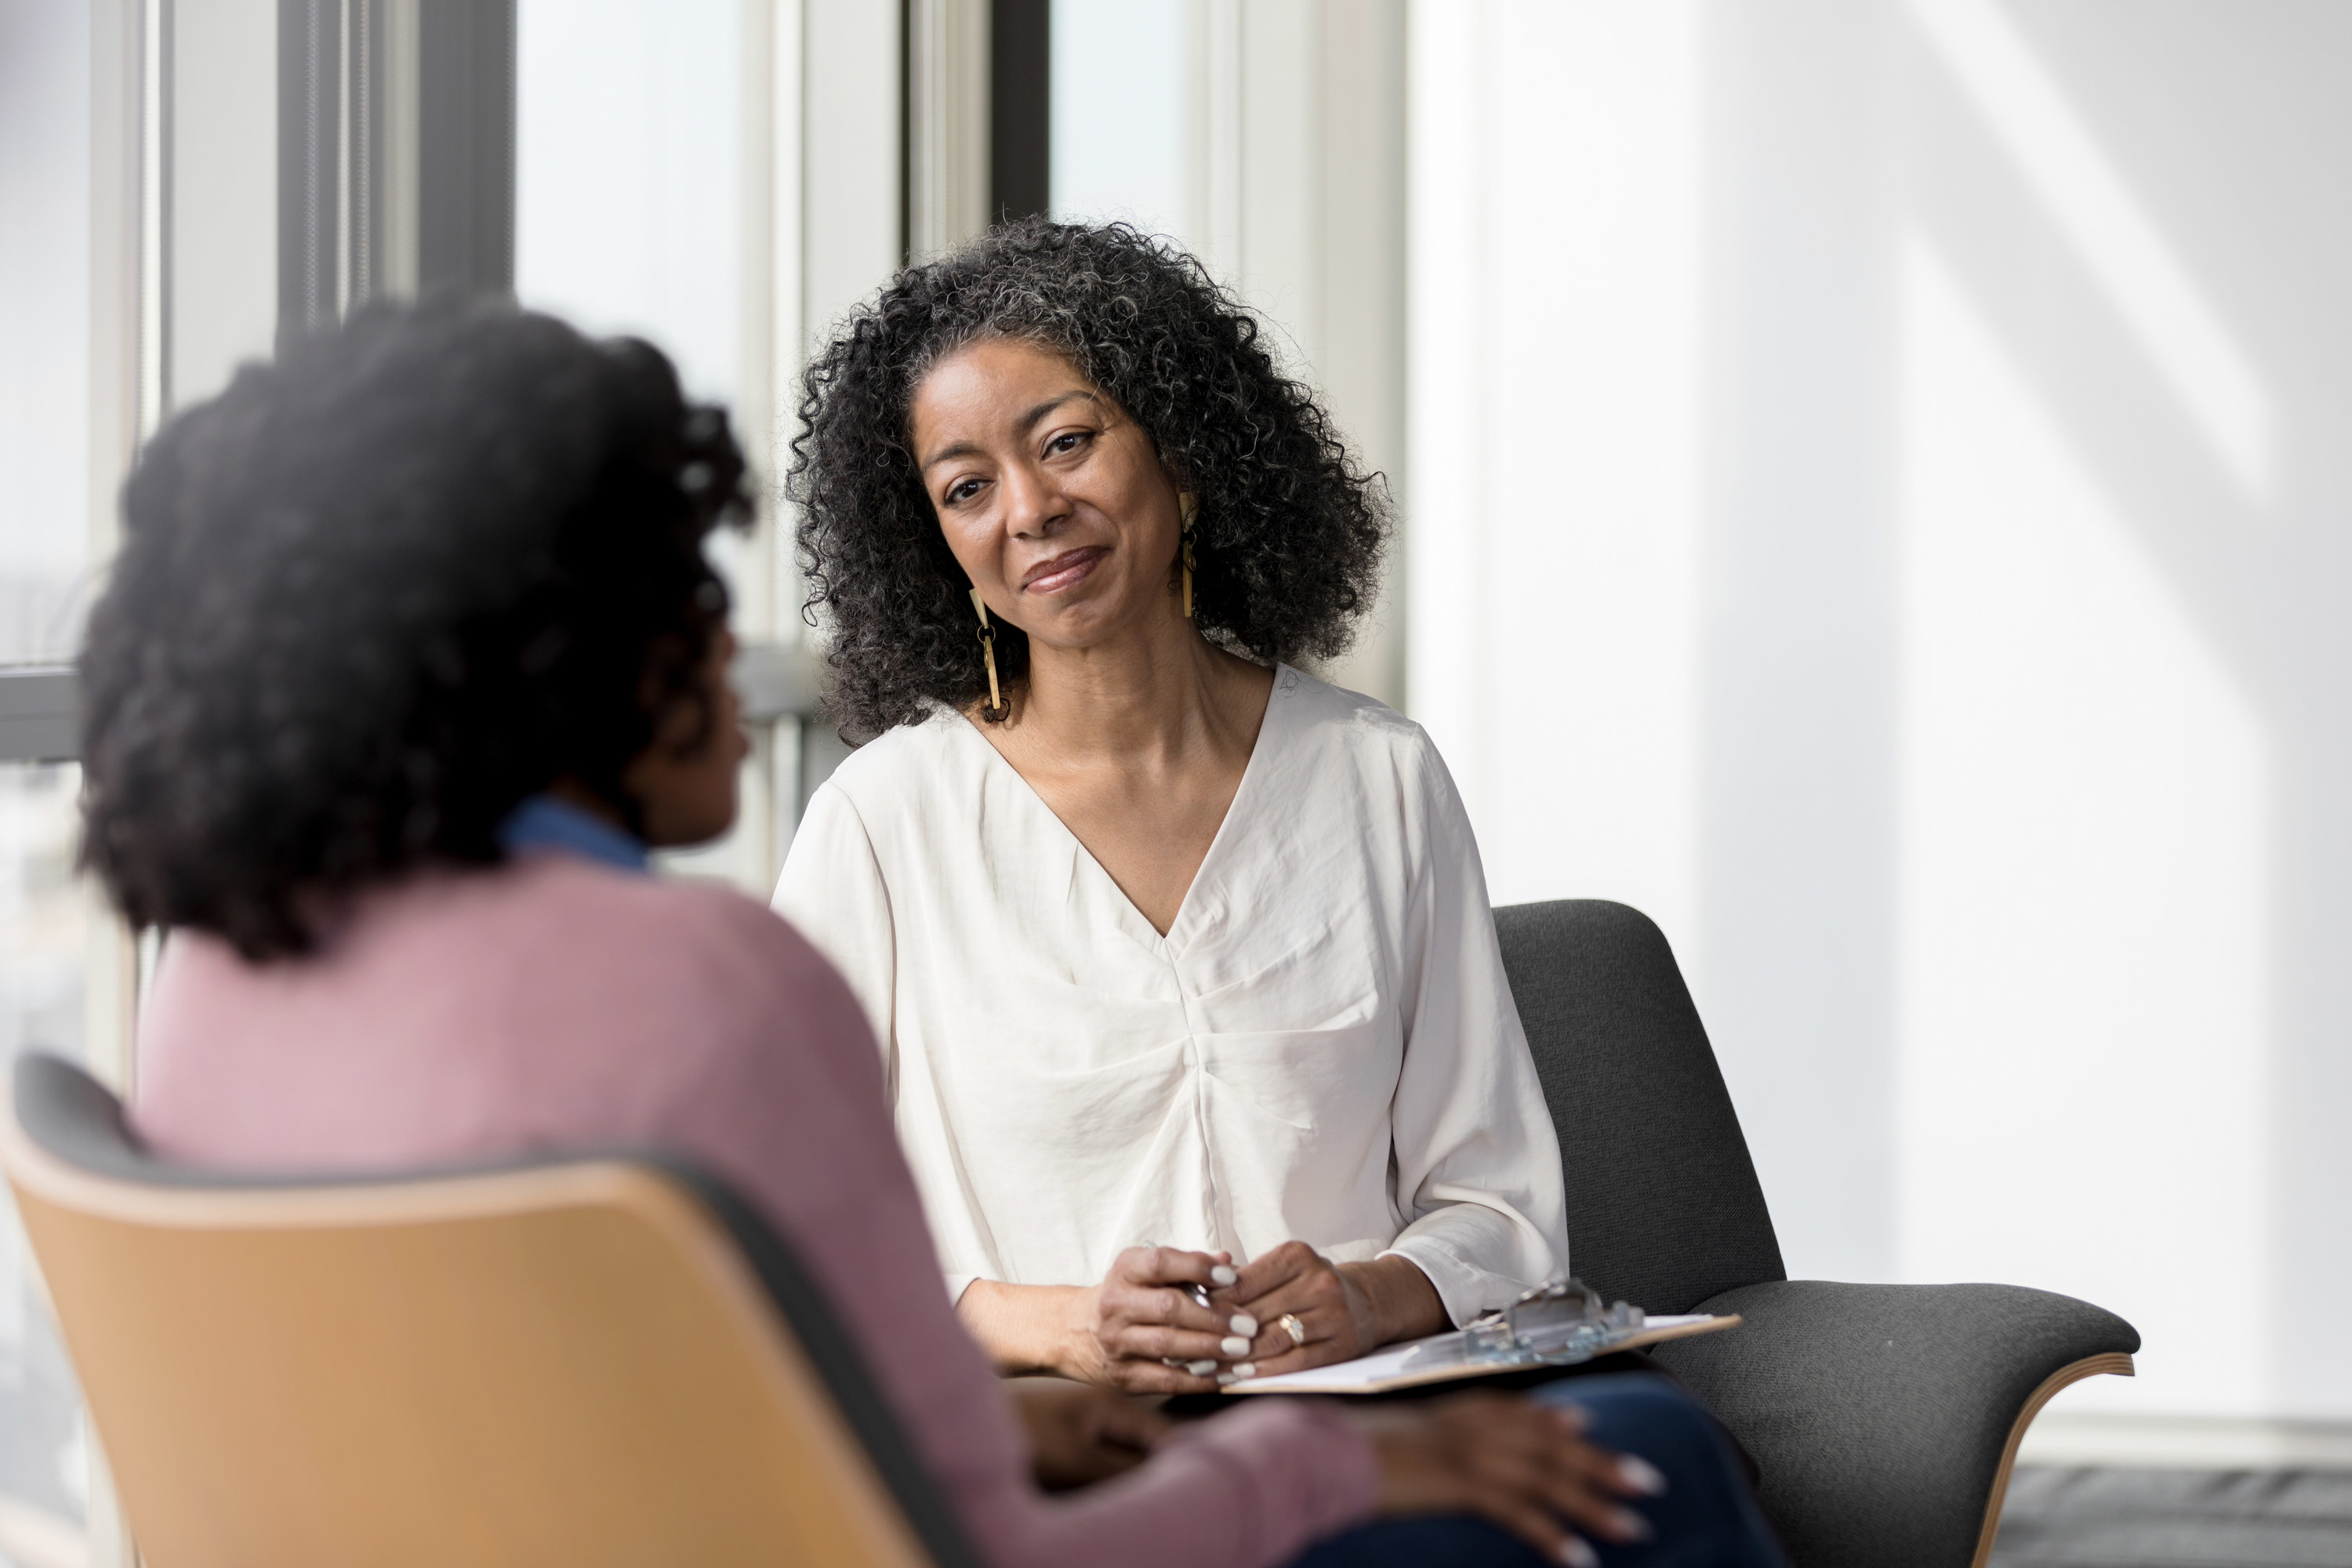 A Black therapist smiling calmly at a patient, who has her back turned to the camera